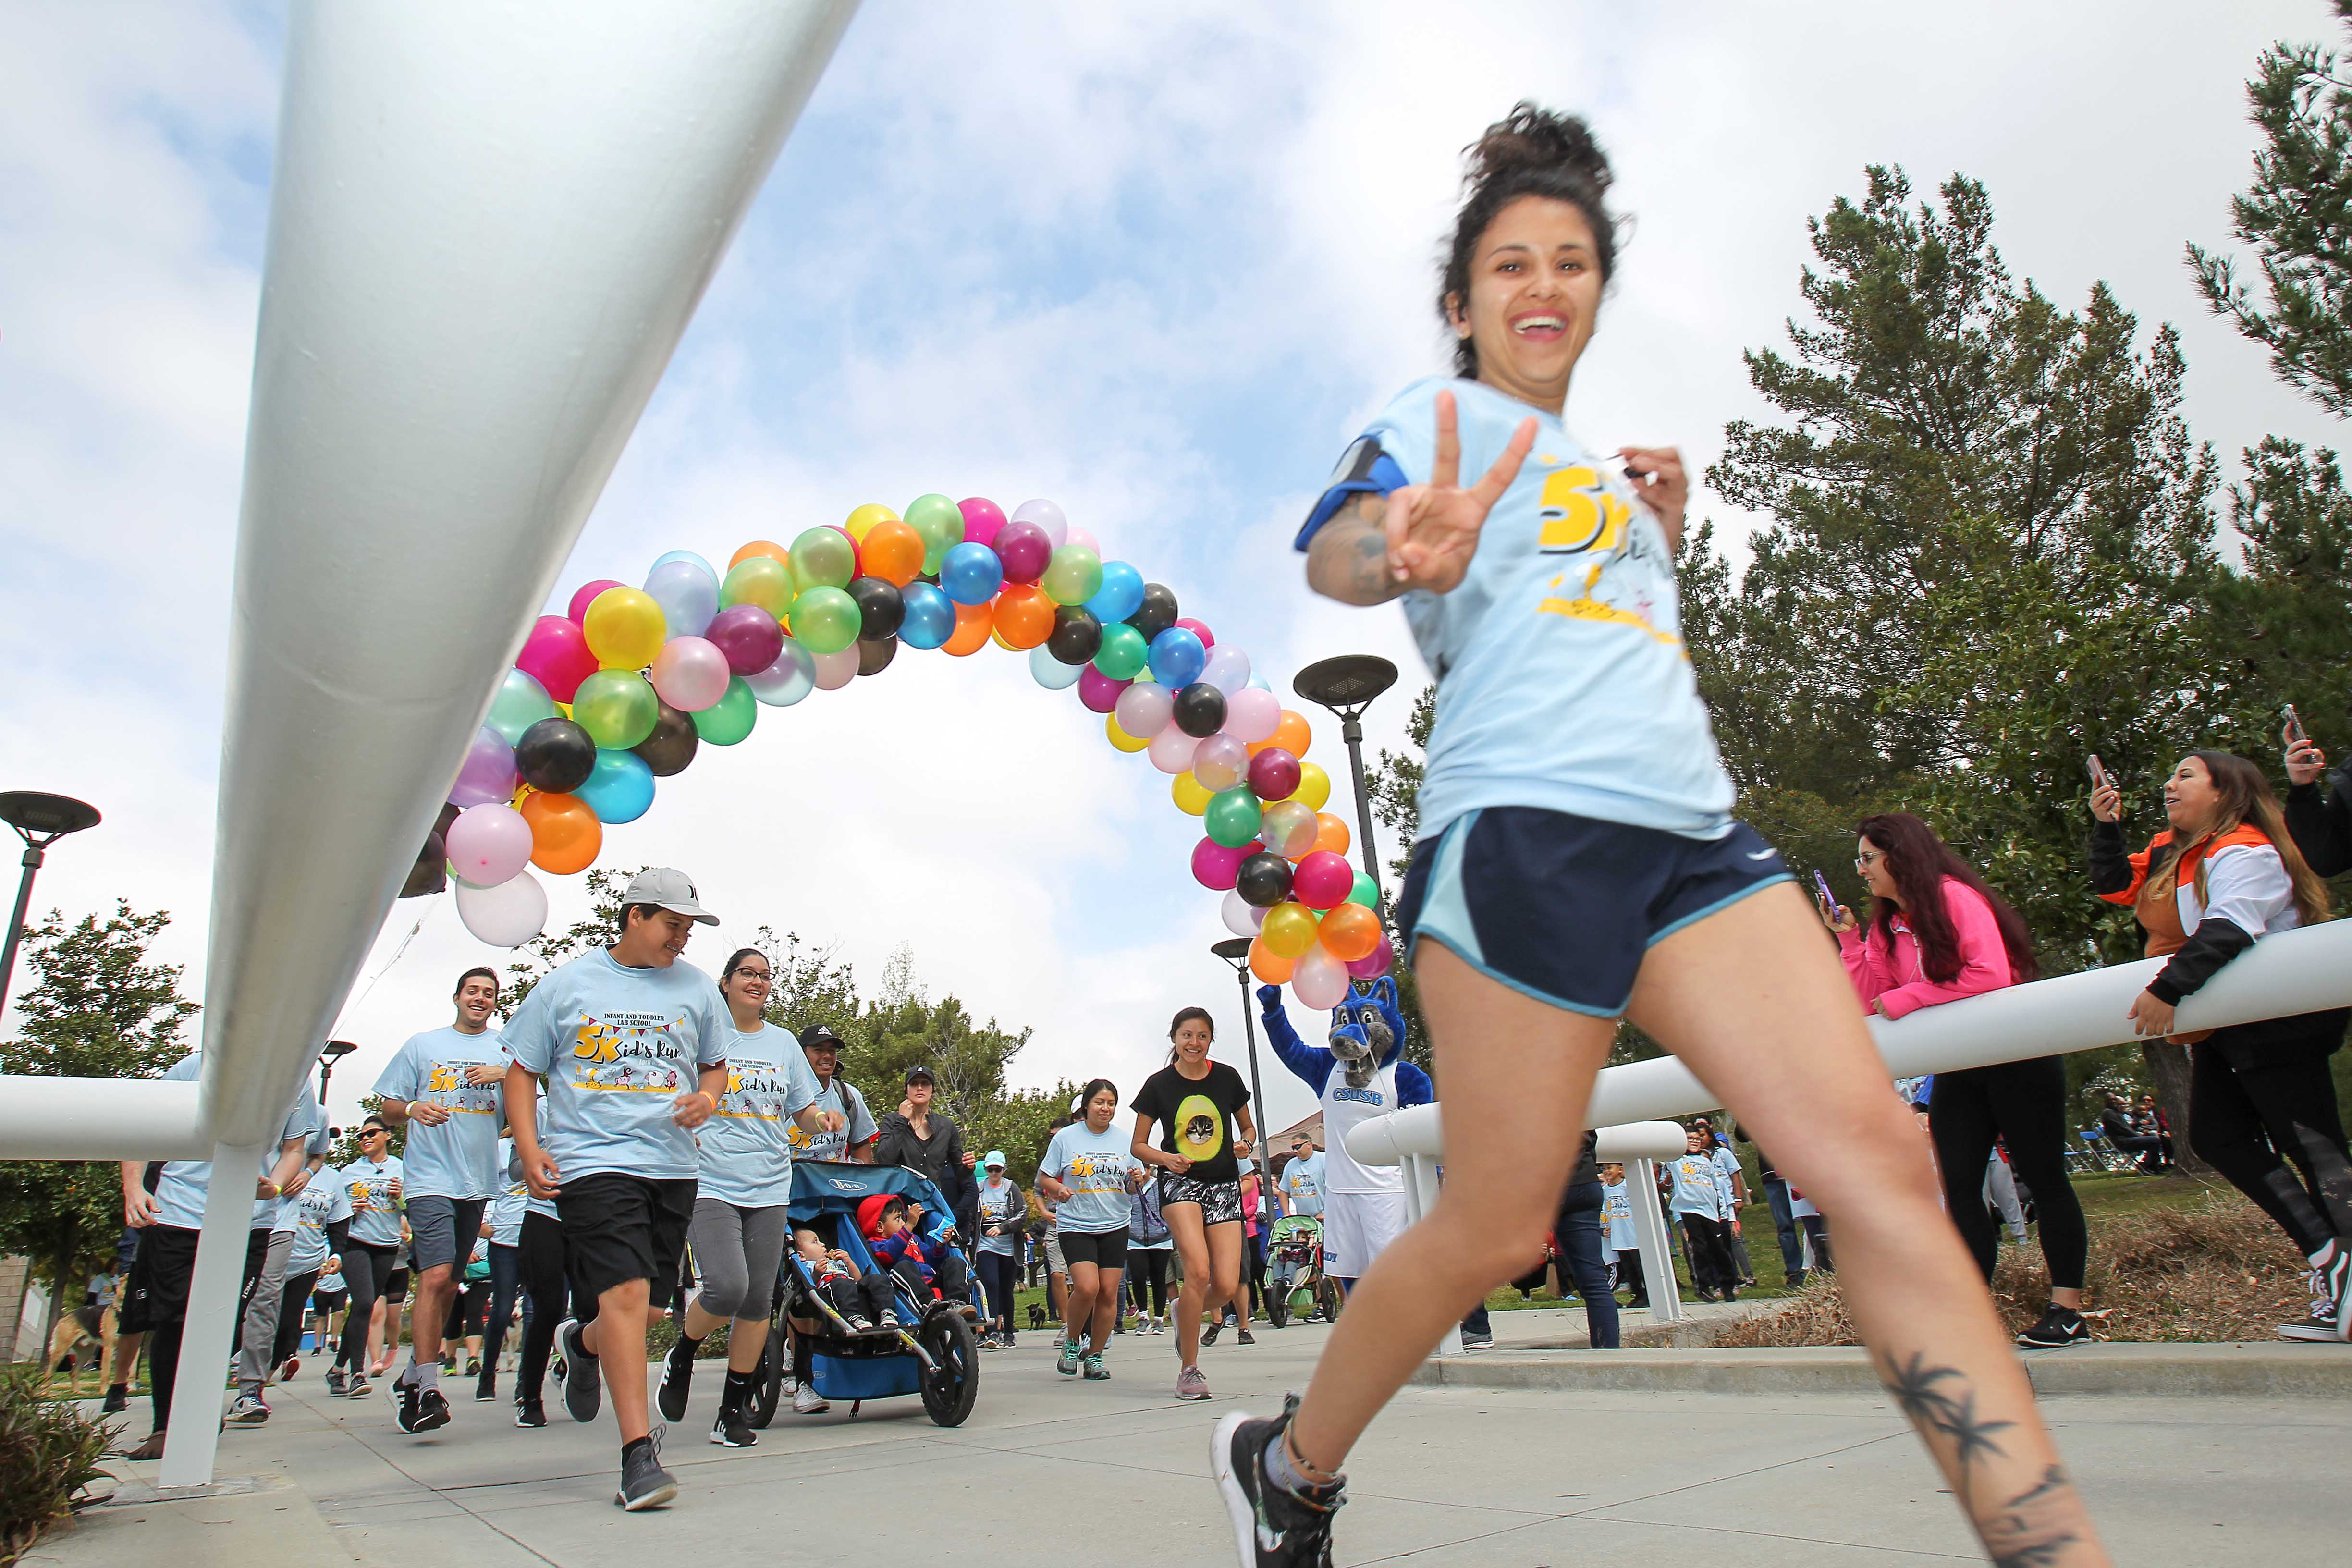 Cal State San Bernardino hosted its second annual 5Kid's Run on April 6 to benefit the university's Infant and Toddler Lab School.